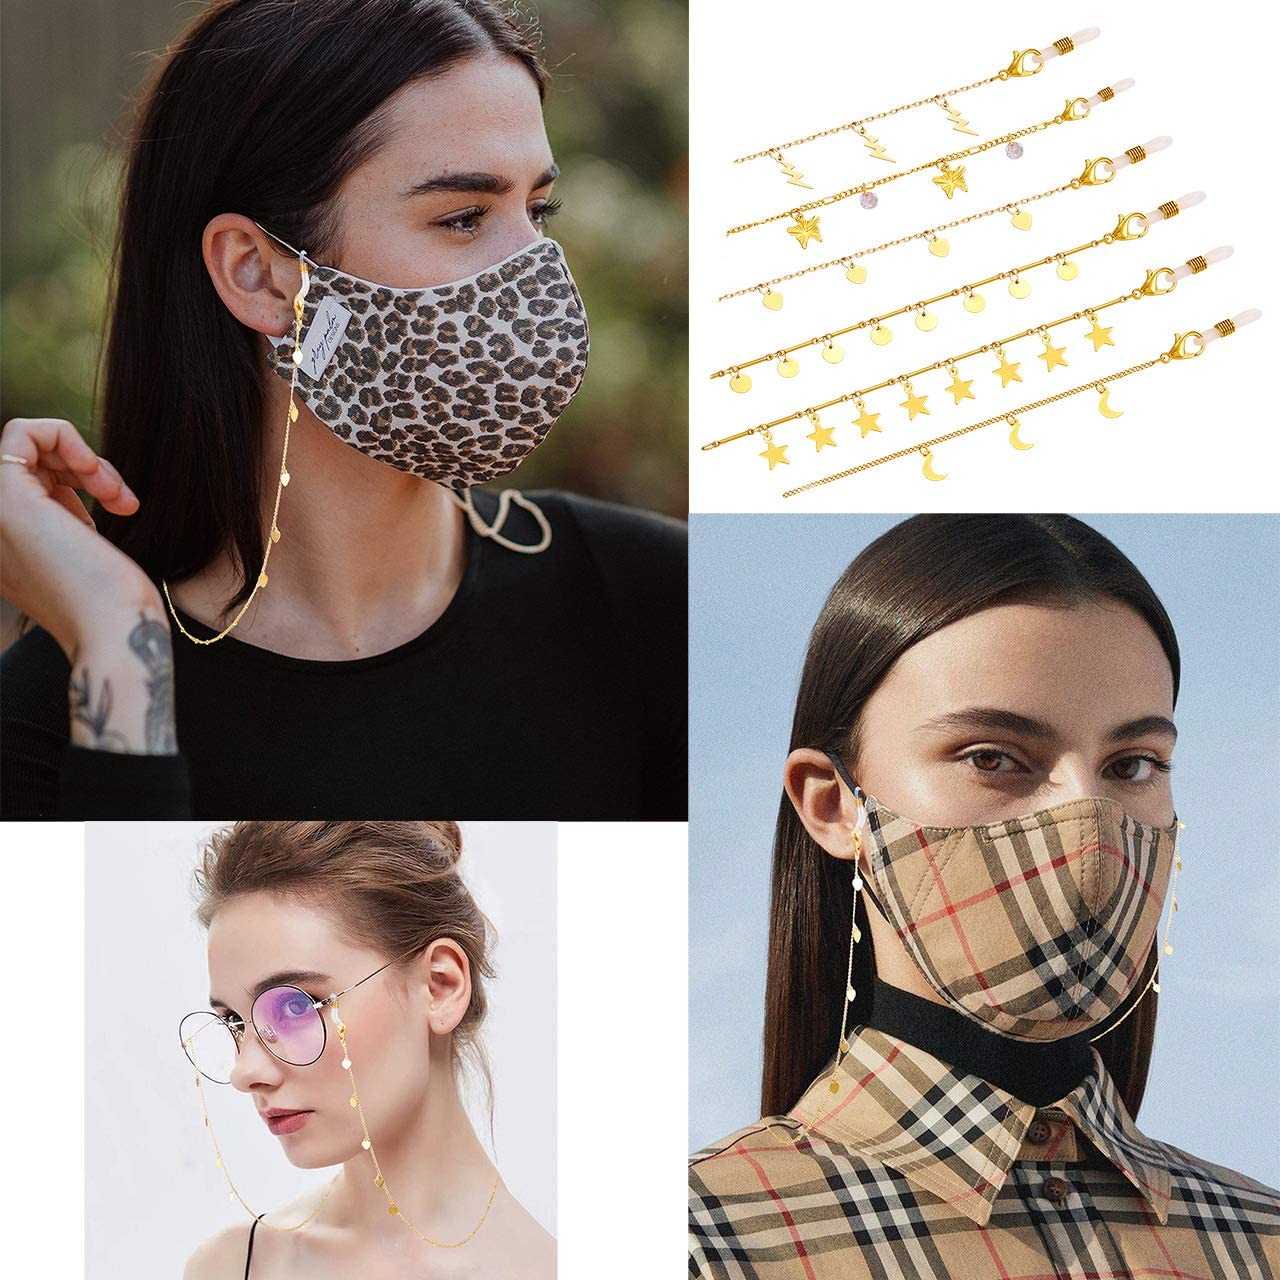 6 PCS Face Mask Chain Holder Glasses Chain Lanyard for Women Girls Gold Moon Star Charm Sunglass Set Anti-Lost Eyeglass Mask Retainer Hanger Keeper Accessory Around Neck